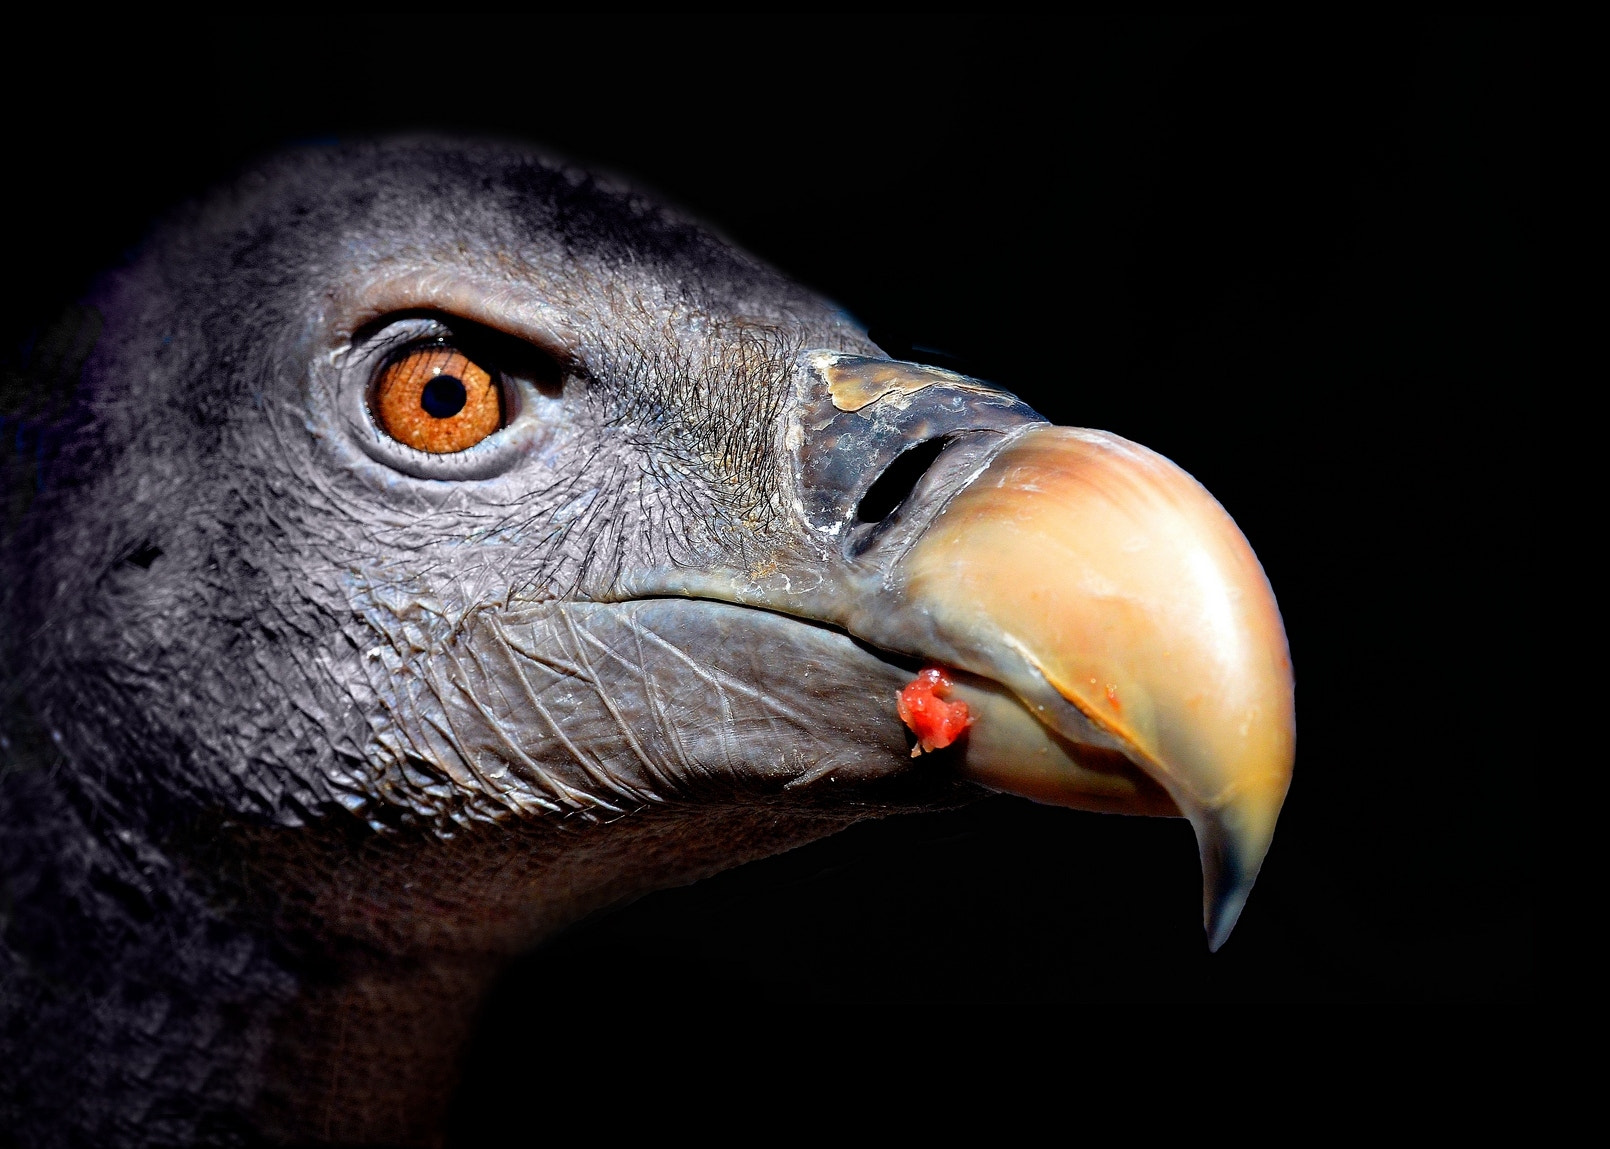 Photograph Vulture Head by Phil Cousins on 500px